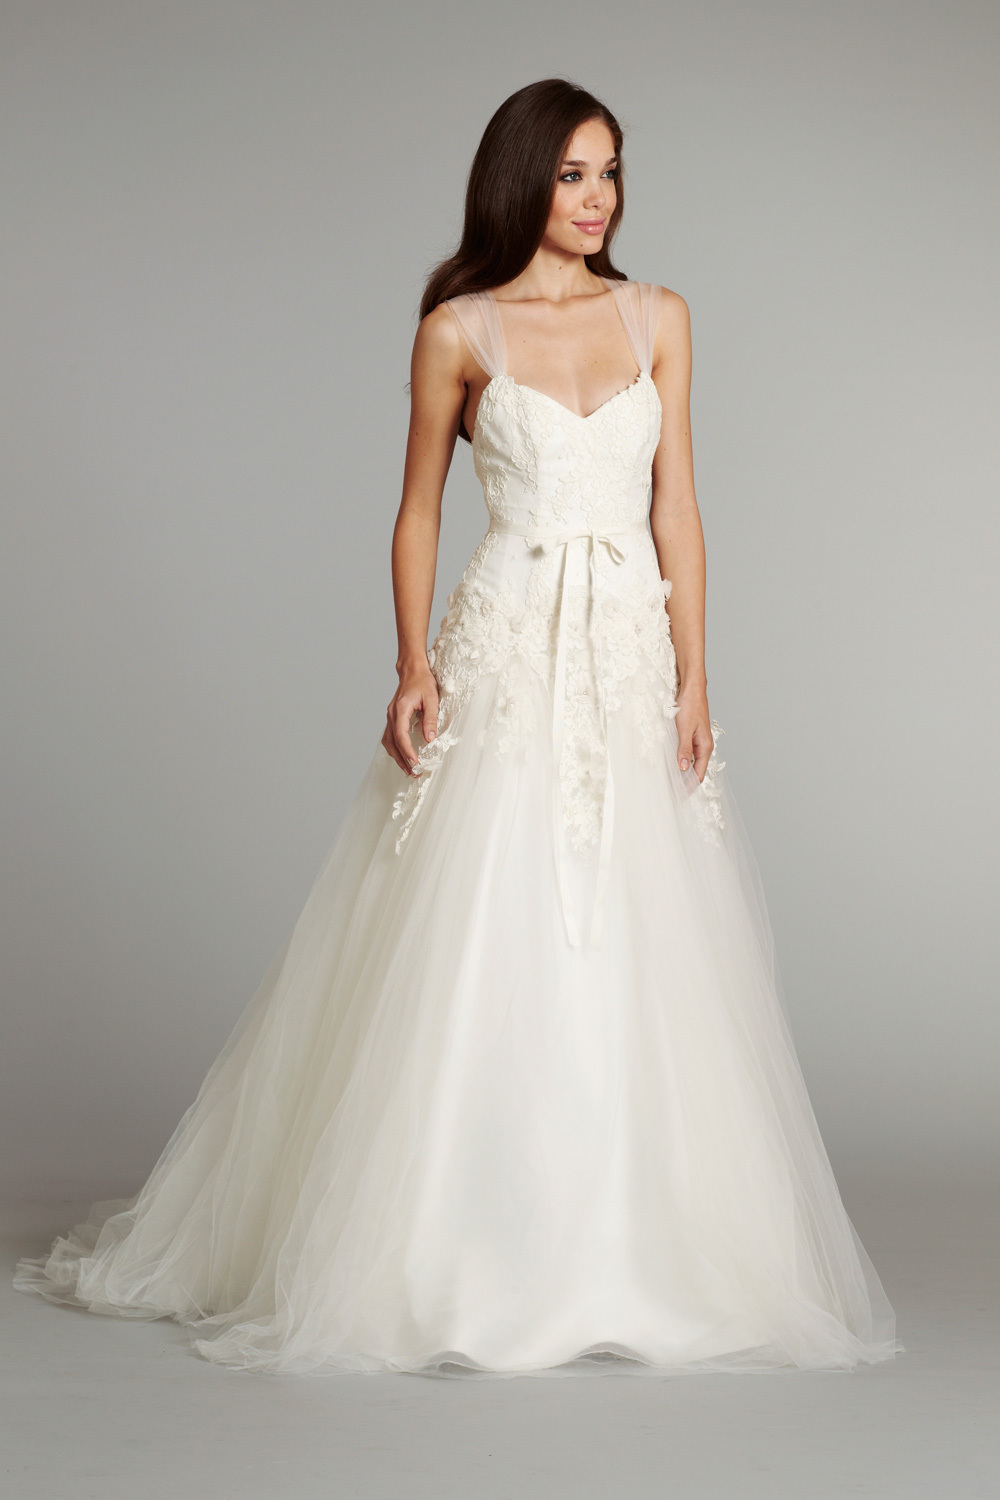 Bridal-gown-wedding-dress-jlm-hayley-paige-fall-2012-serafina-front.full